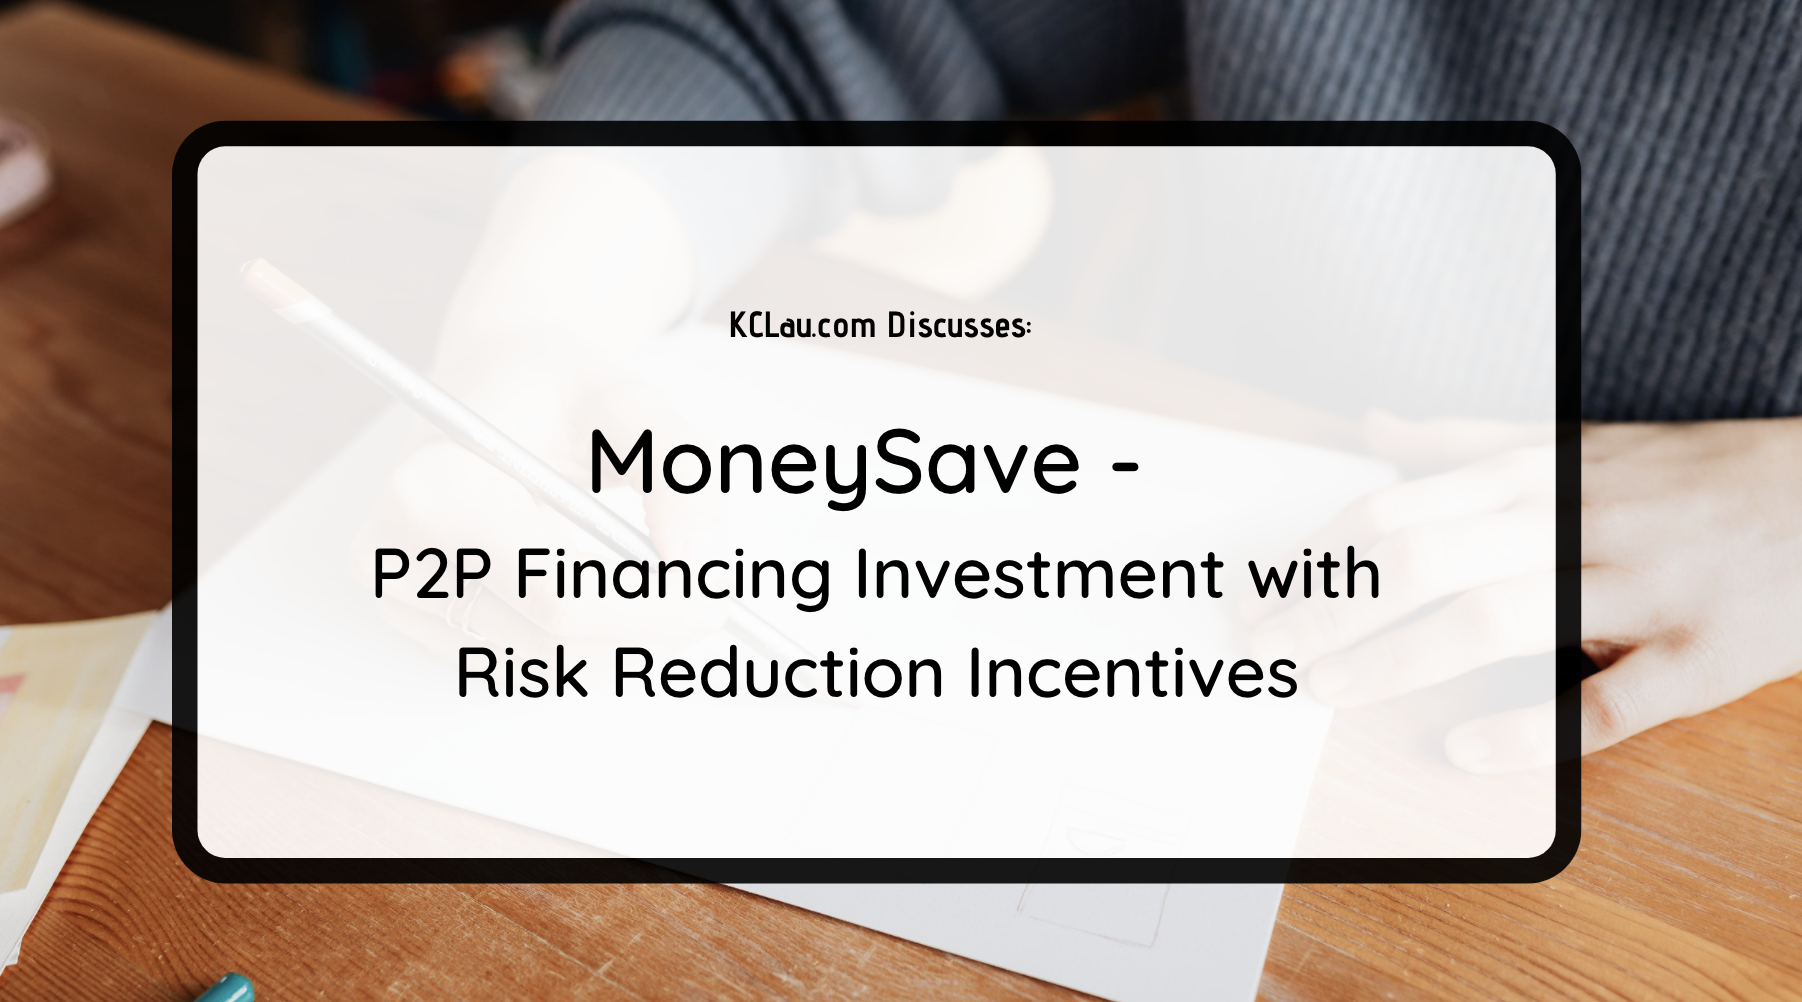 MoneySave: P2P Financing Investment with Risk Reduction Incentives